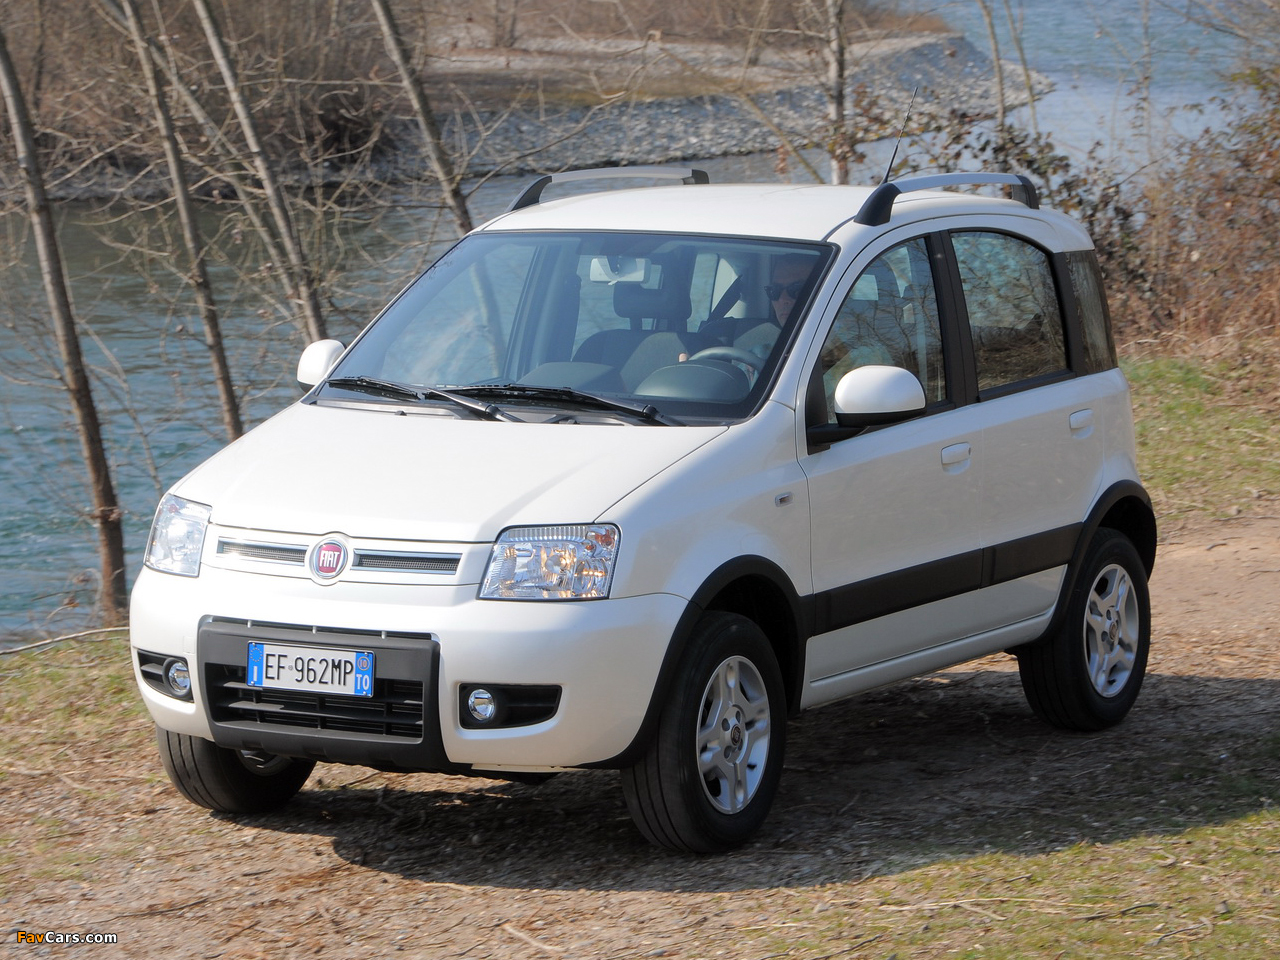 images of fiat panda 4x4 climbing 169 2009 12 1280x960. Black Bedroom Furniture Sets. Home Design Ideas